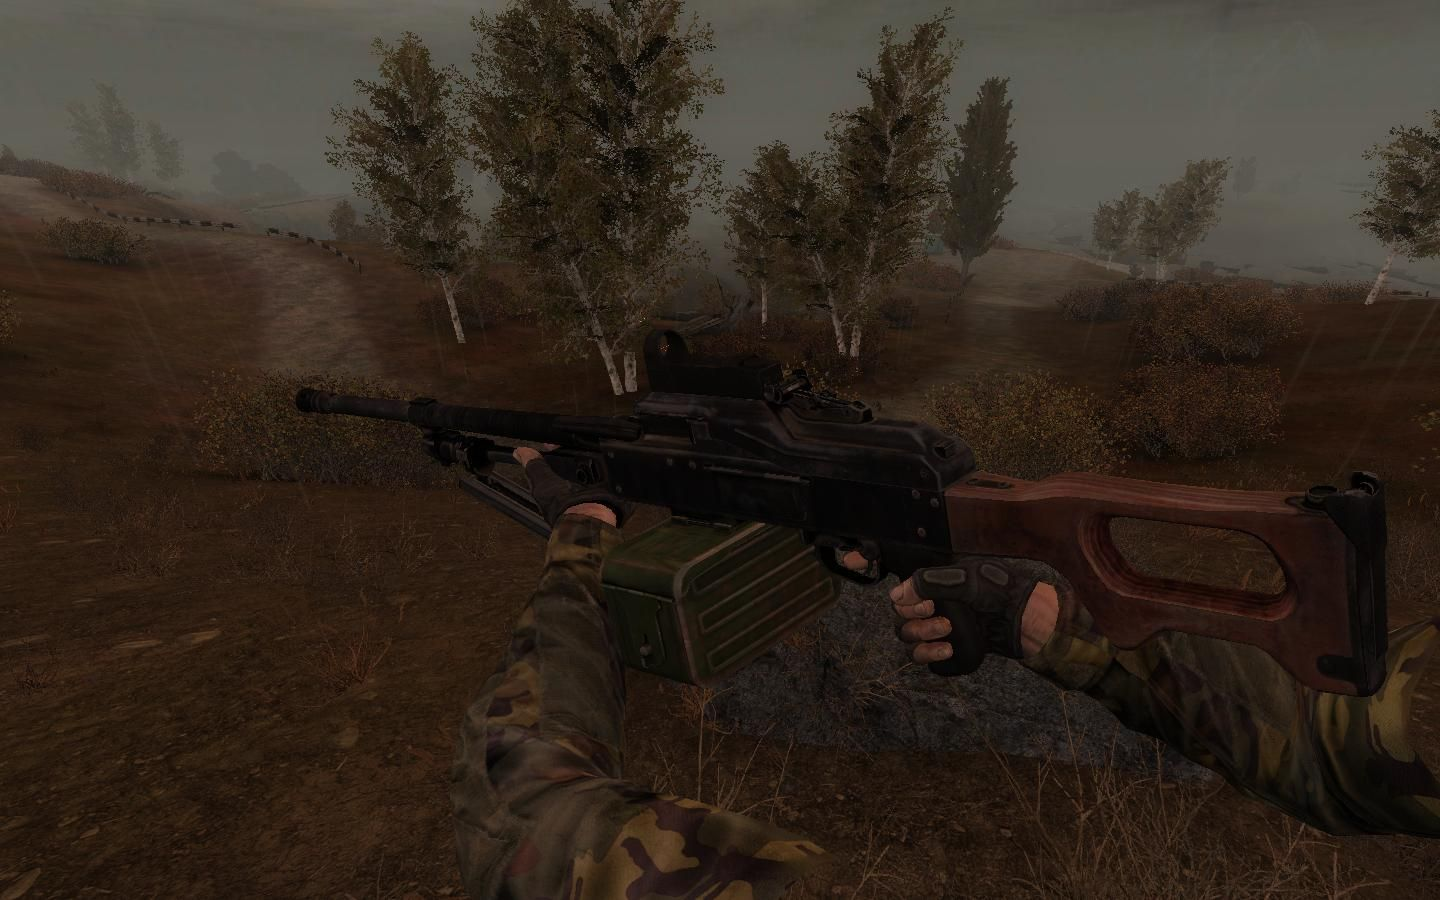 S.T.A.L.K.E.R.: Call of Pripyat - Arsenal Overhaul [1.6.02/3.1] (2009-2016/PC/Русский), RePack от SeregA-Lus